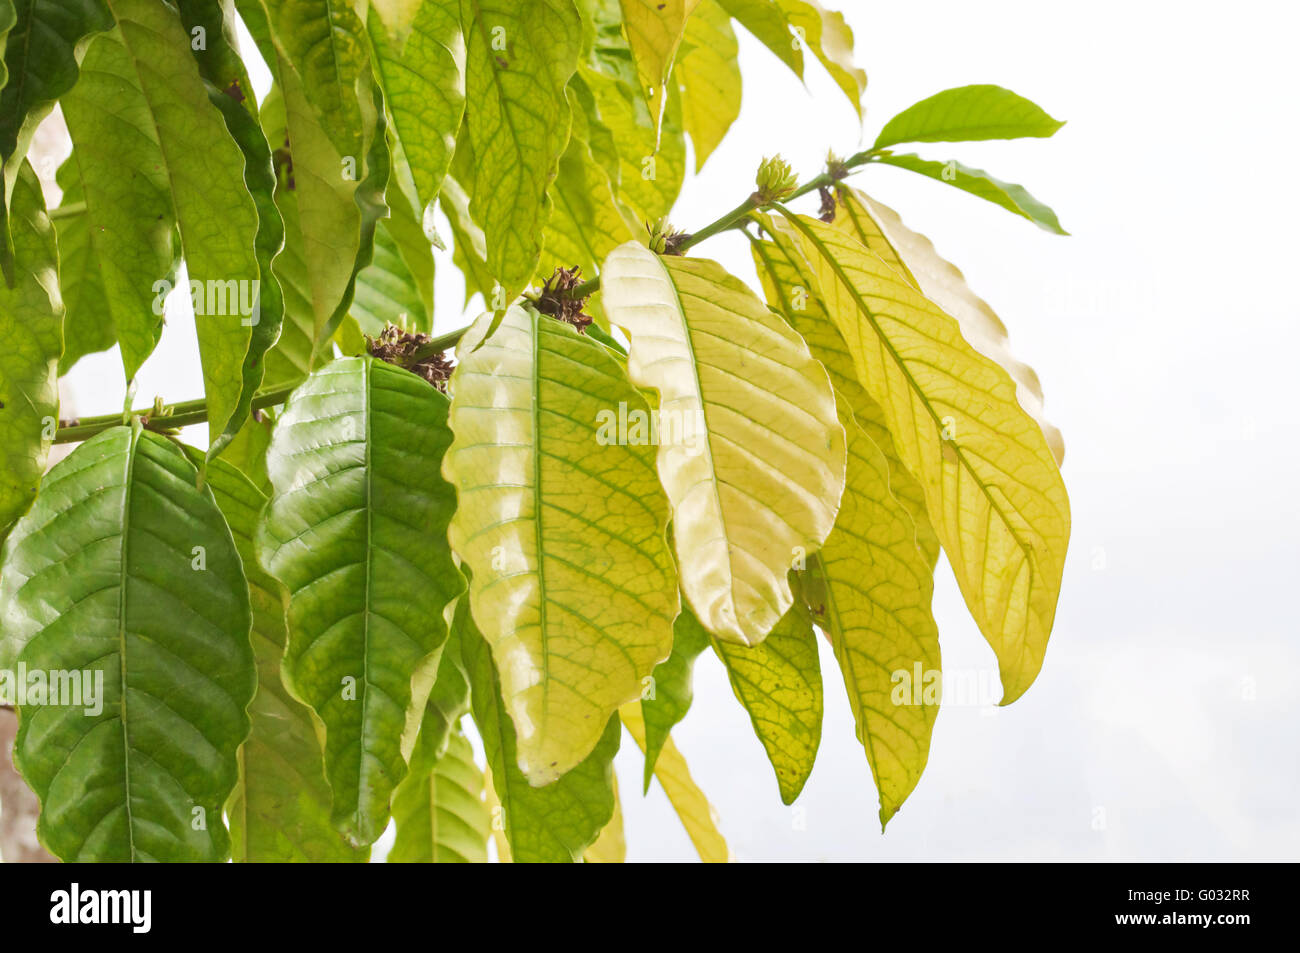 Fresh green tobacco leaves on white background - Stock Image